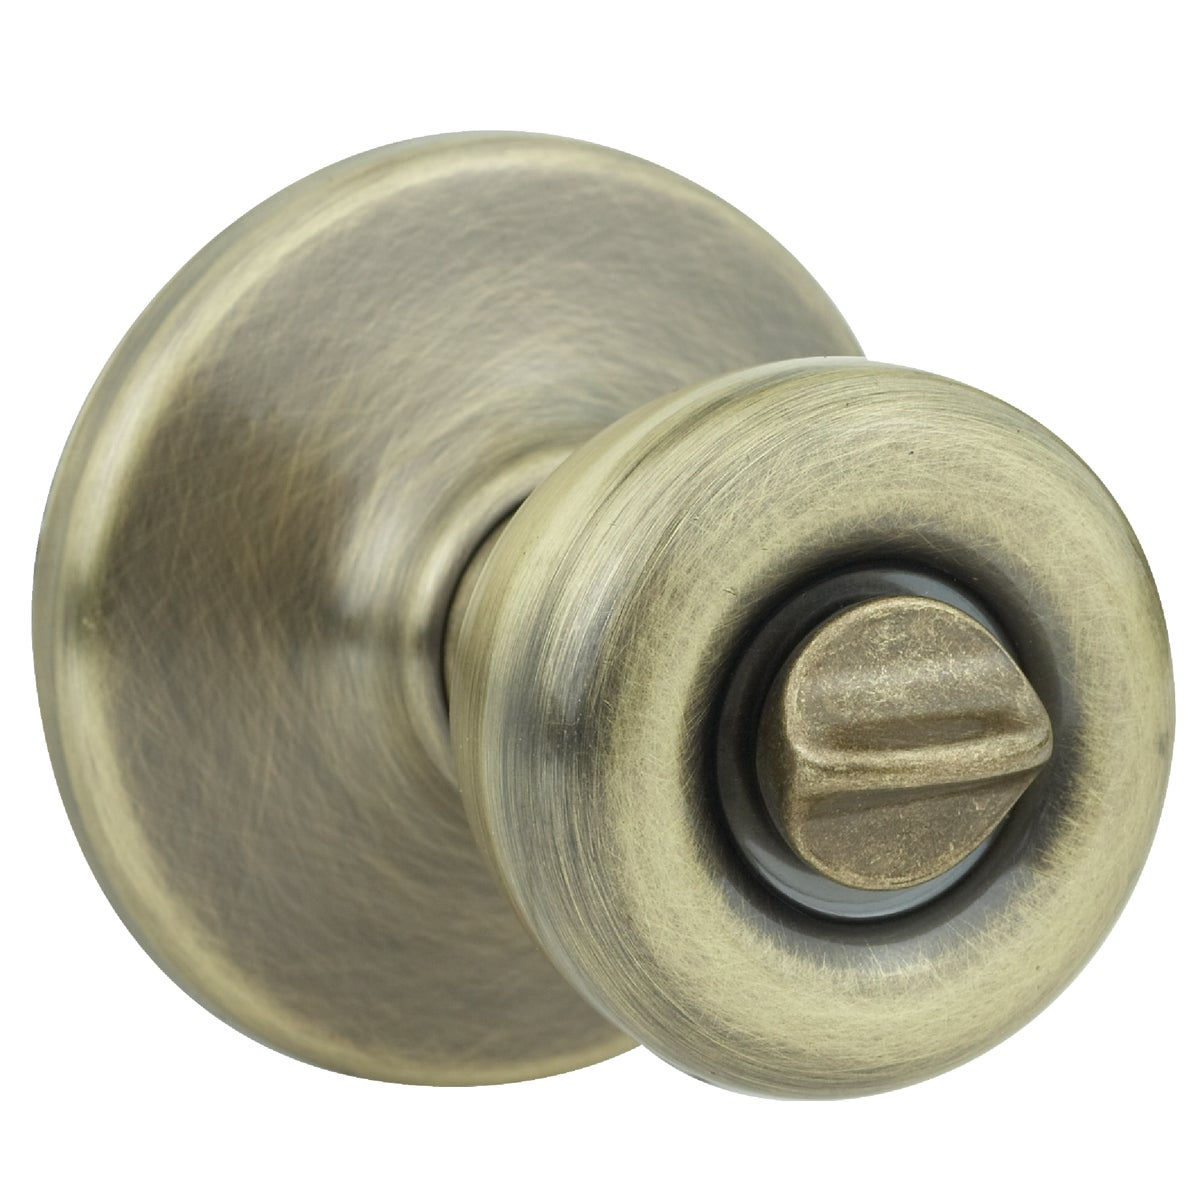 AB CP TYLO PRIVACY LOCK - 300T 5 CP by Kwikset